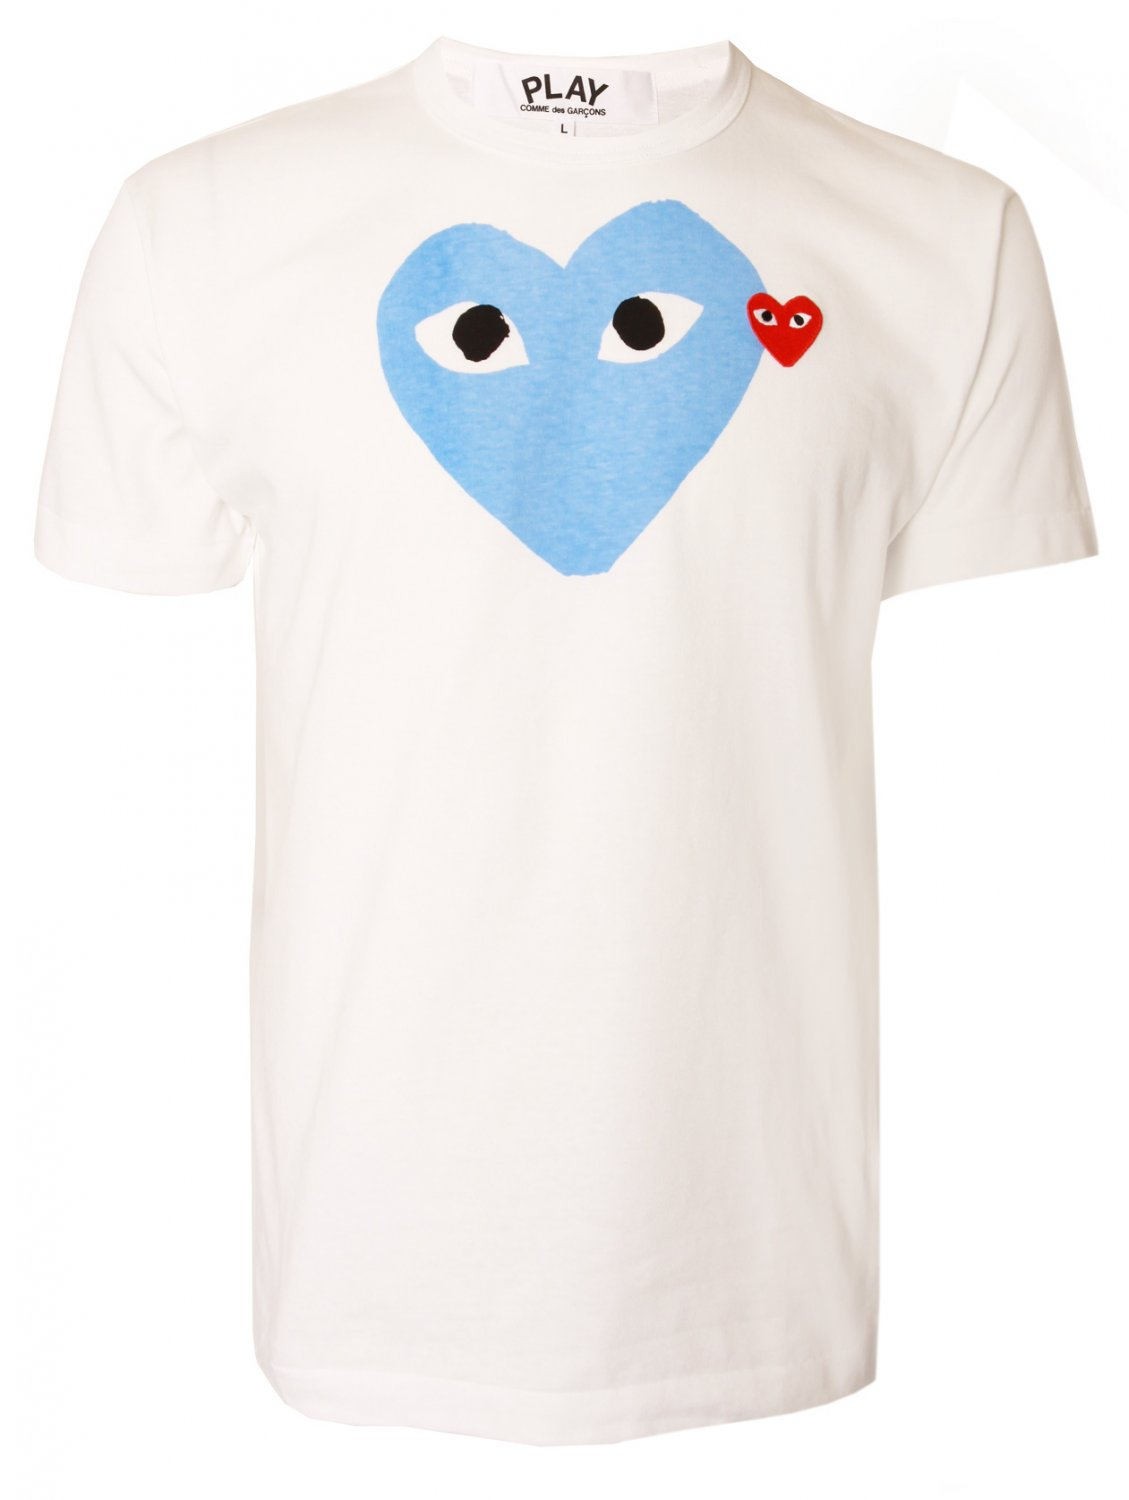 play comme des gar ons play mens blue heart logo t shirt. Black Bedroom Furniture Sets. Home Design Ideas